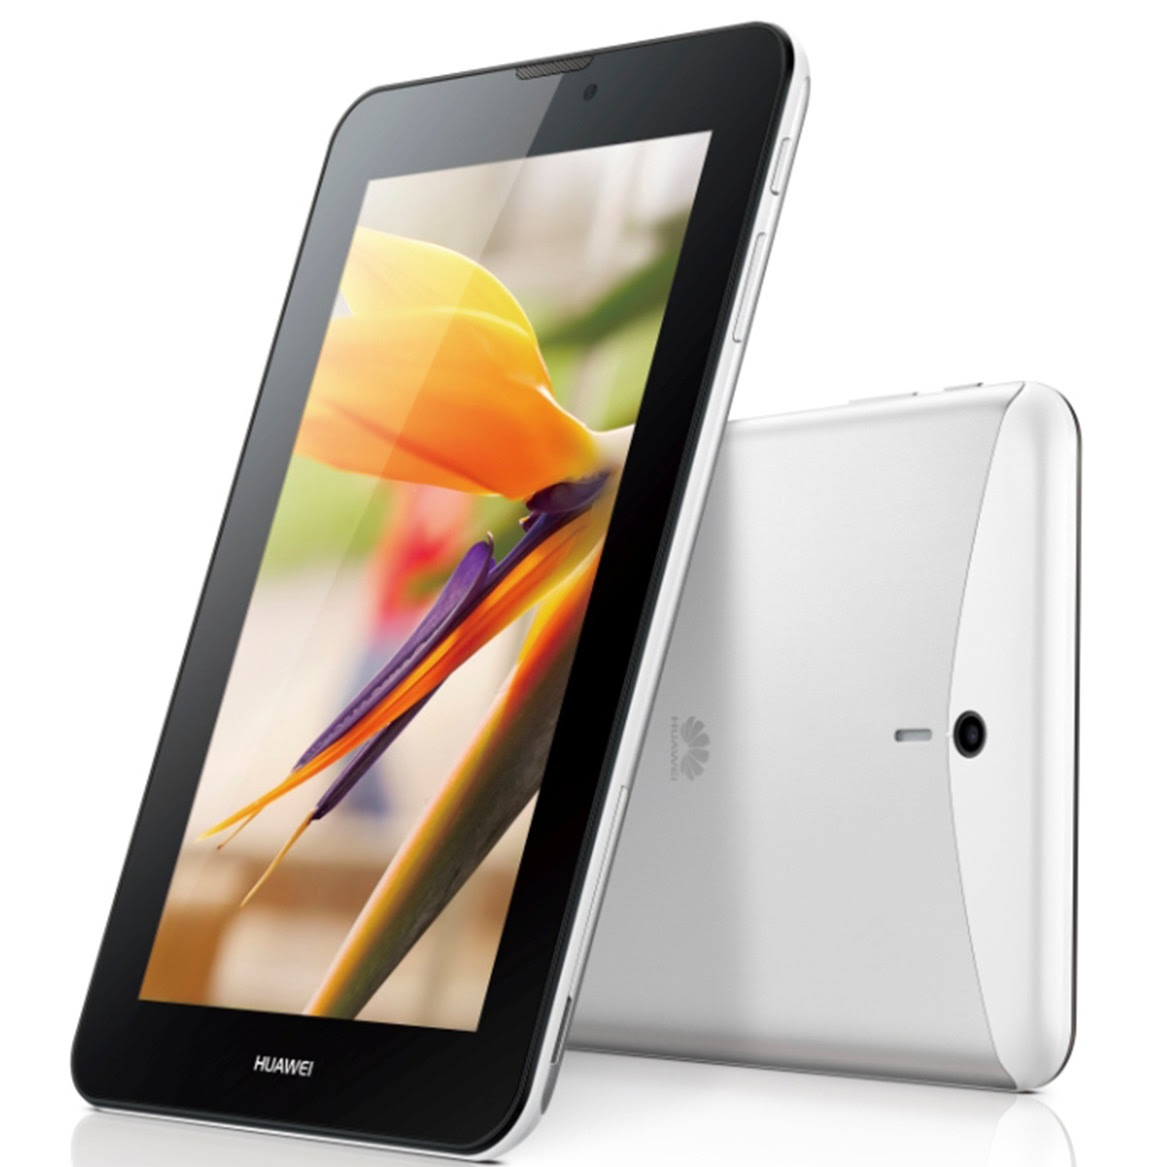 HUAWEI MediaPad 7 Youth S7-701u FIRMWARE Downlaod and How to Flash HUAWEI Tab By GSM Favor